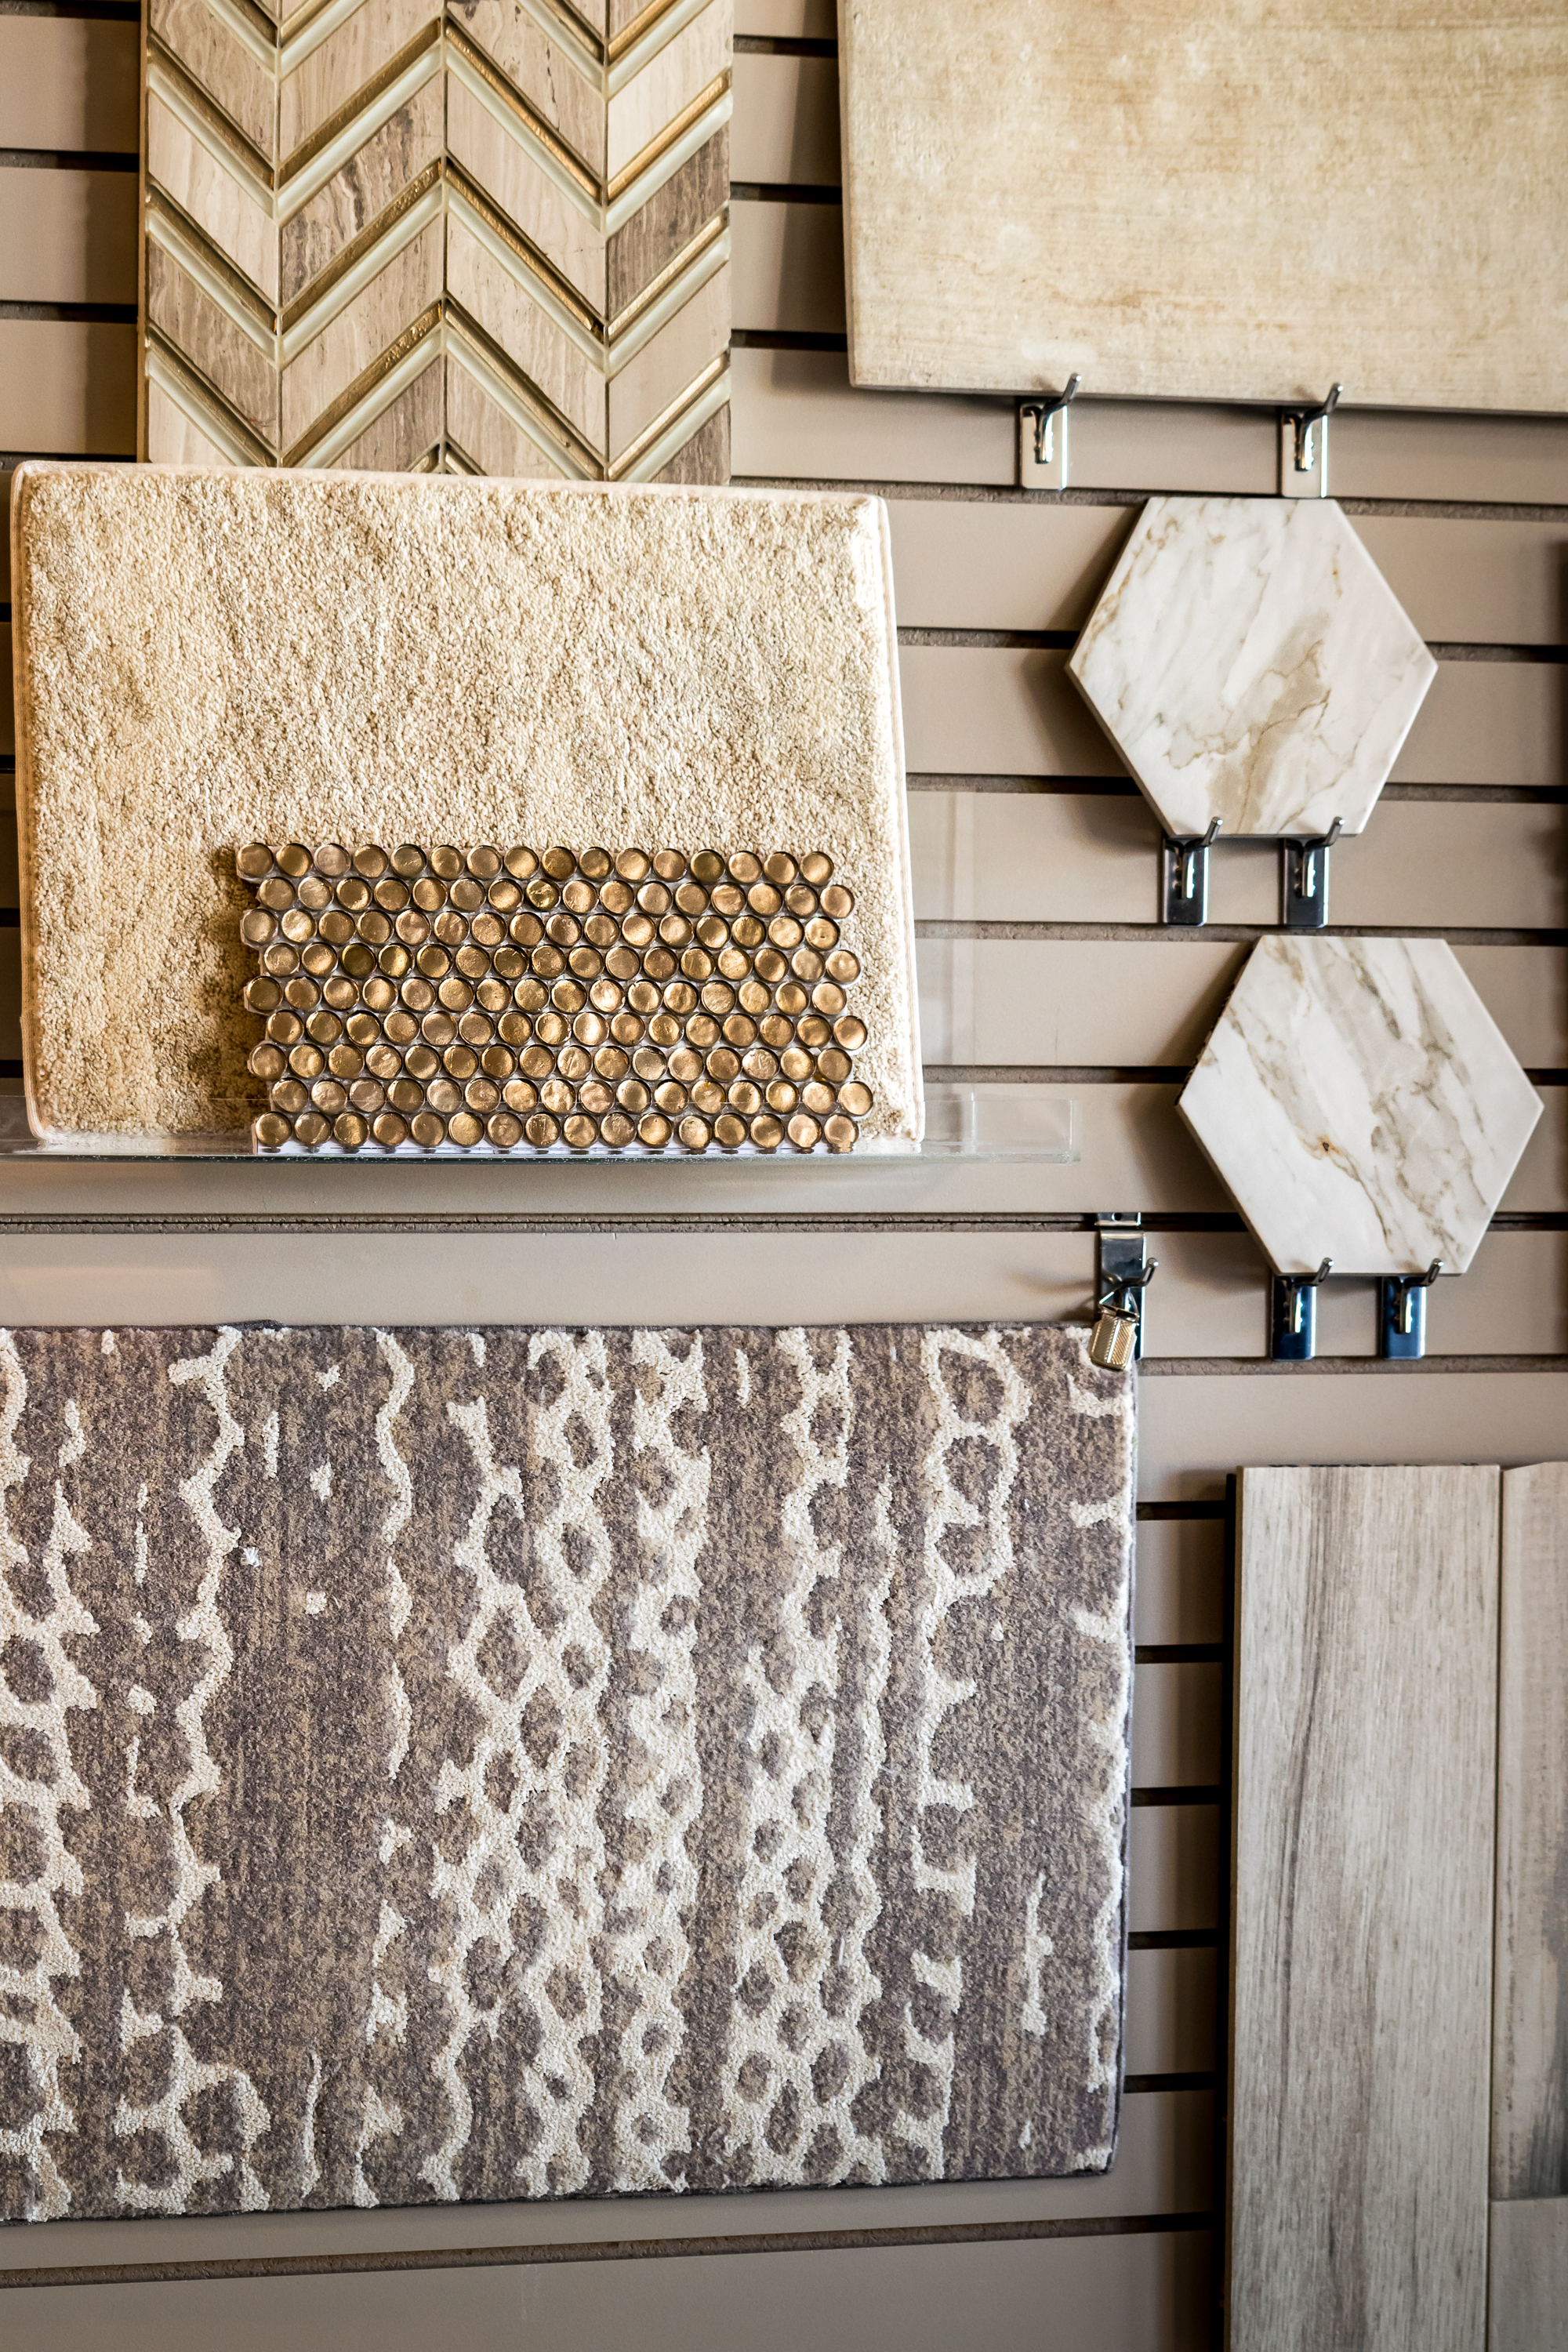 In st louis mo shop at floor source designer showroom for all in st louis mo shop at floor source designer showroom for all your flooring needs call 314 567 3771 prompt 2 toll free 1 877 665 6728 baanklon Image collections